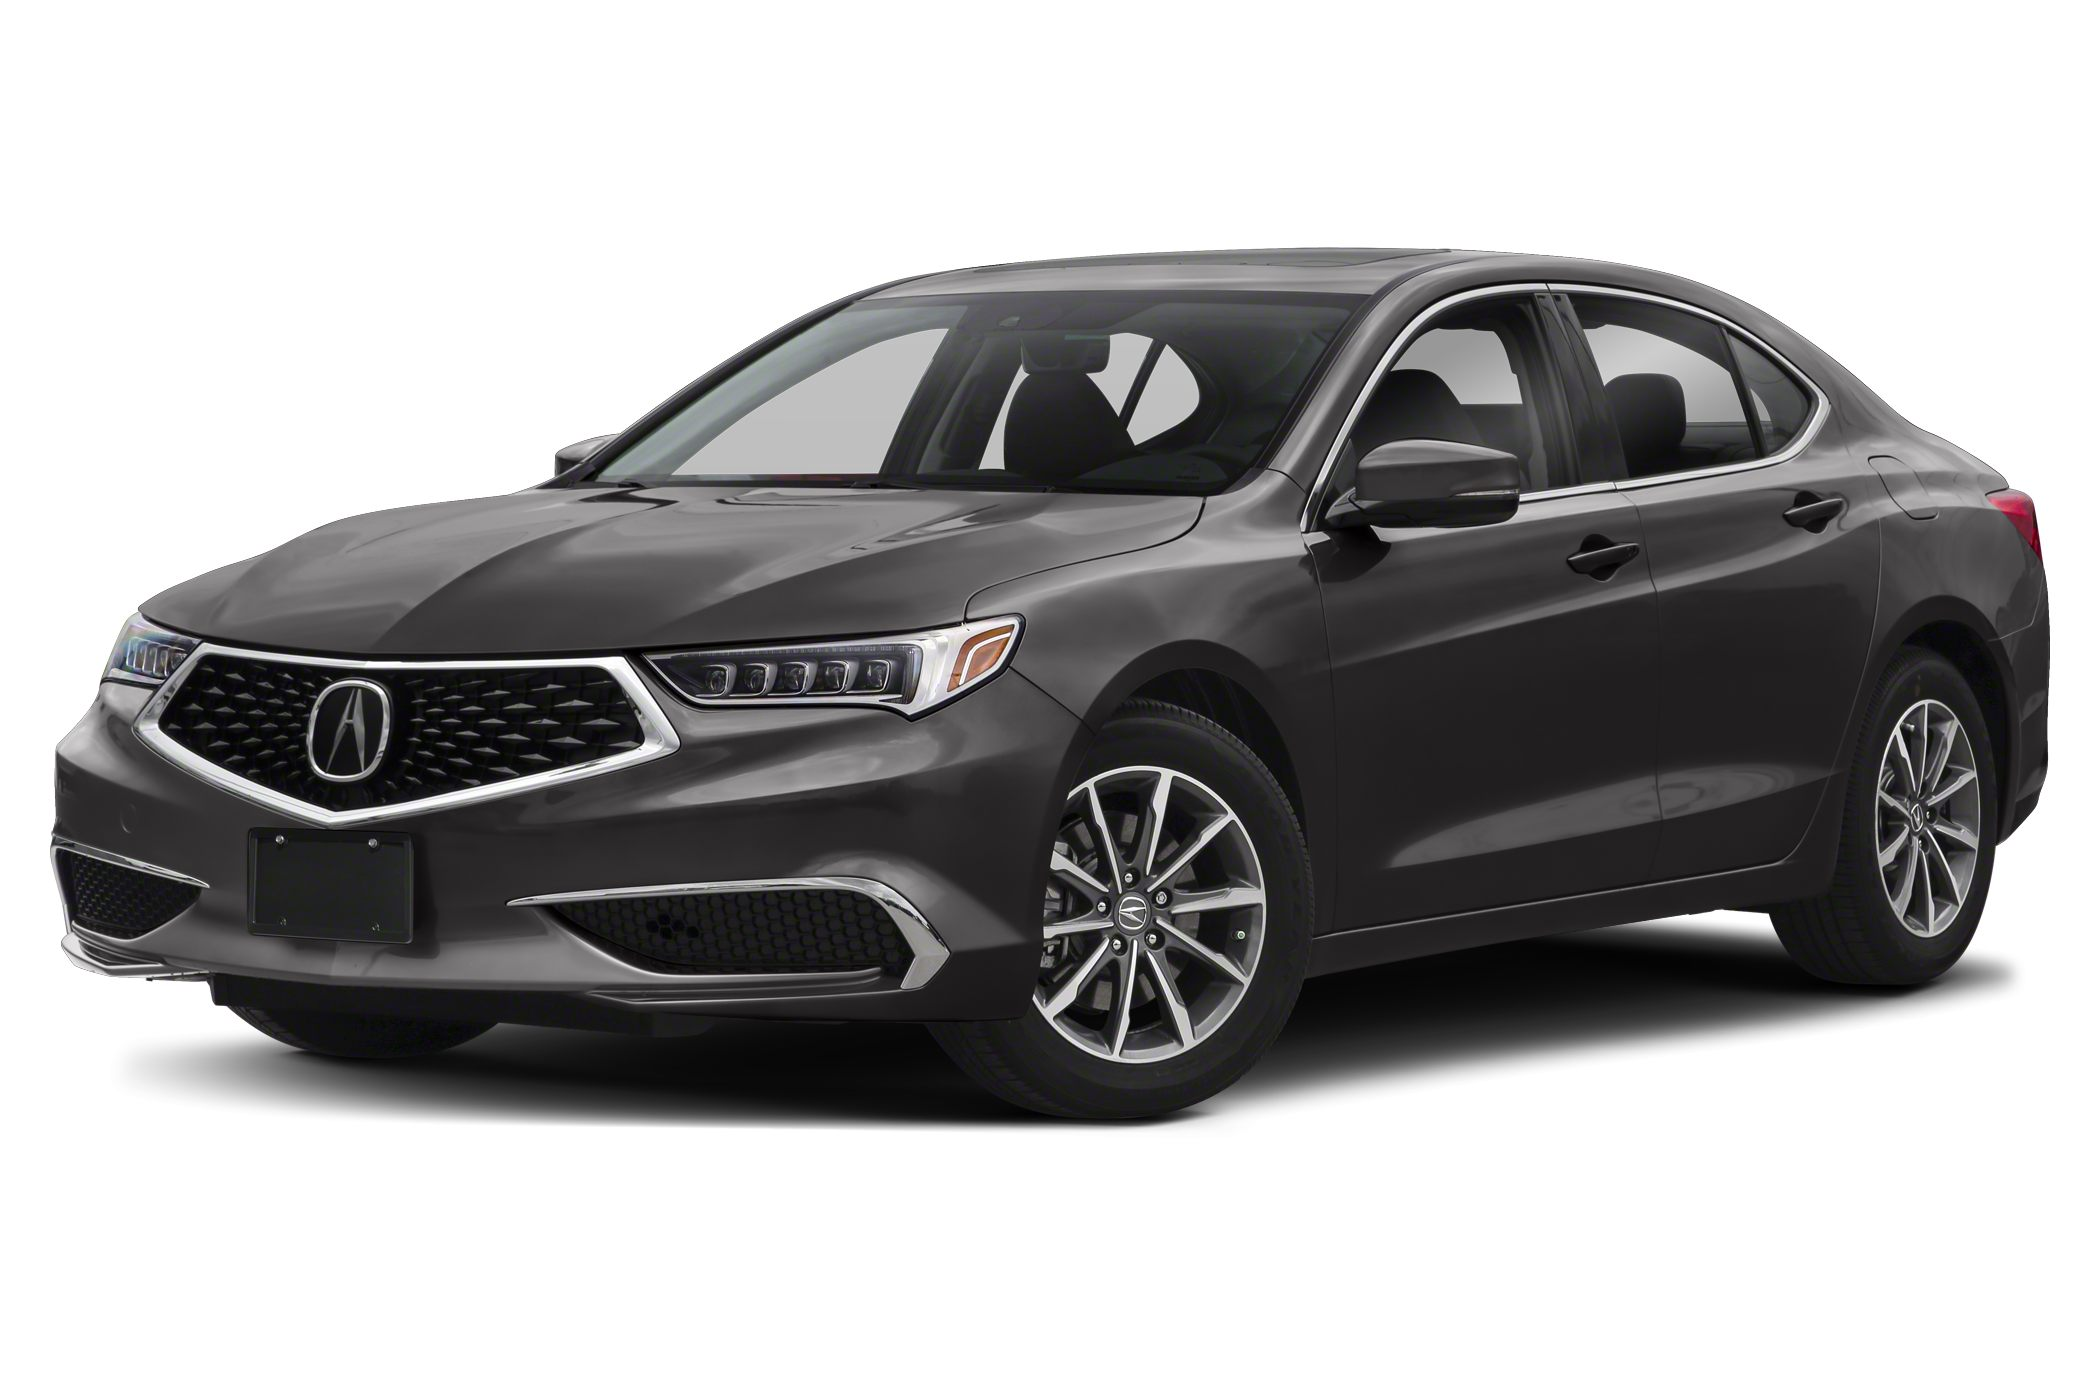 2019 Acura TLX New Car Test Drive